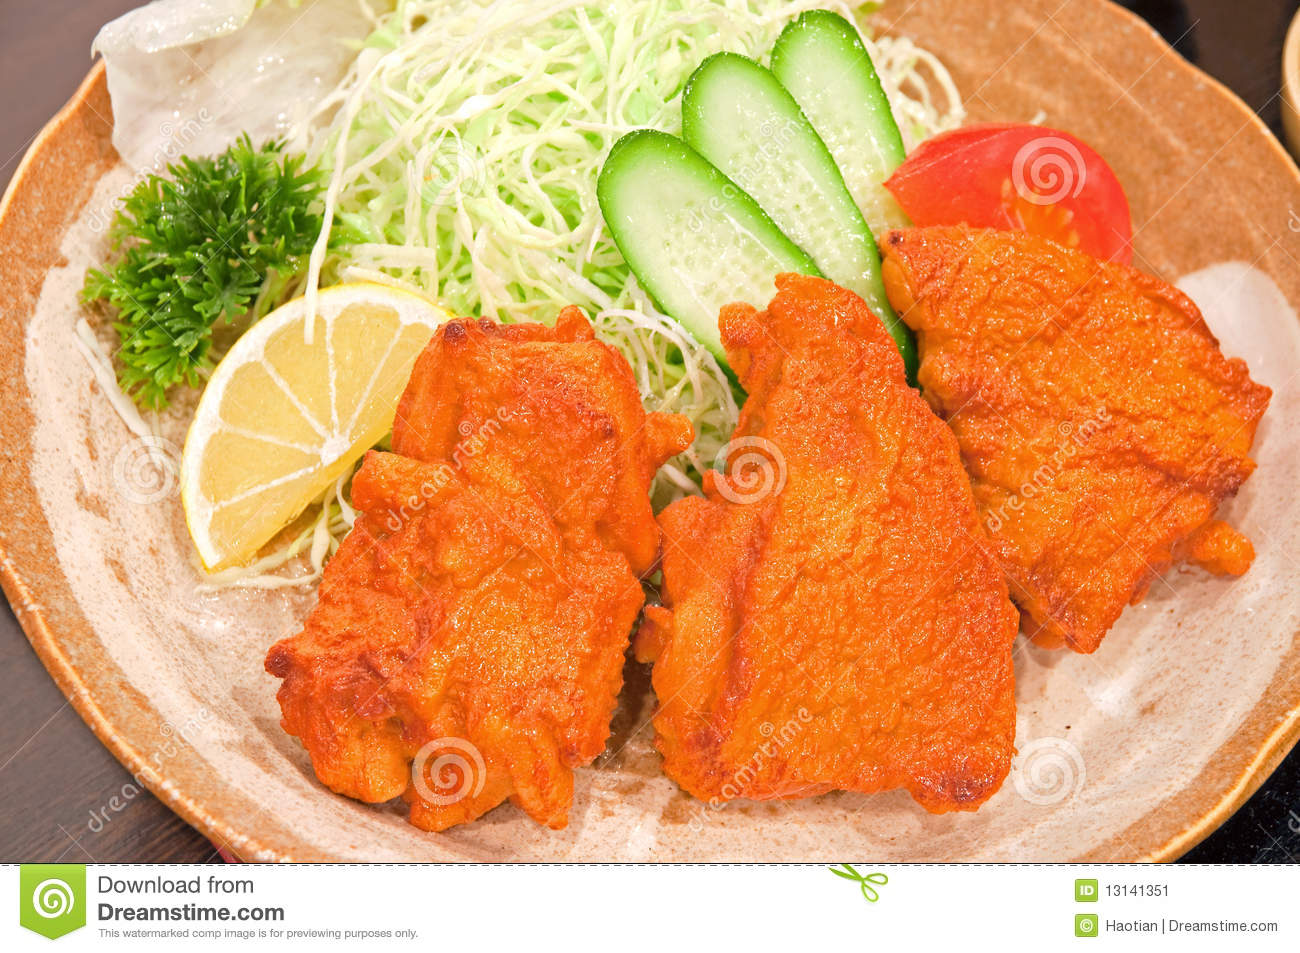 Japanese style fried chicken with simple salad.